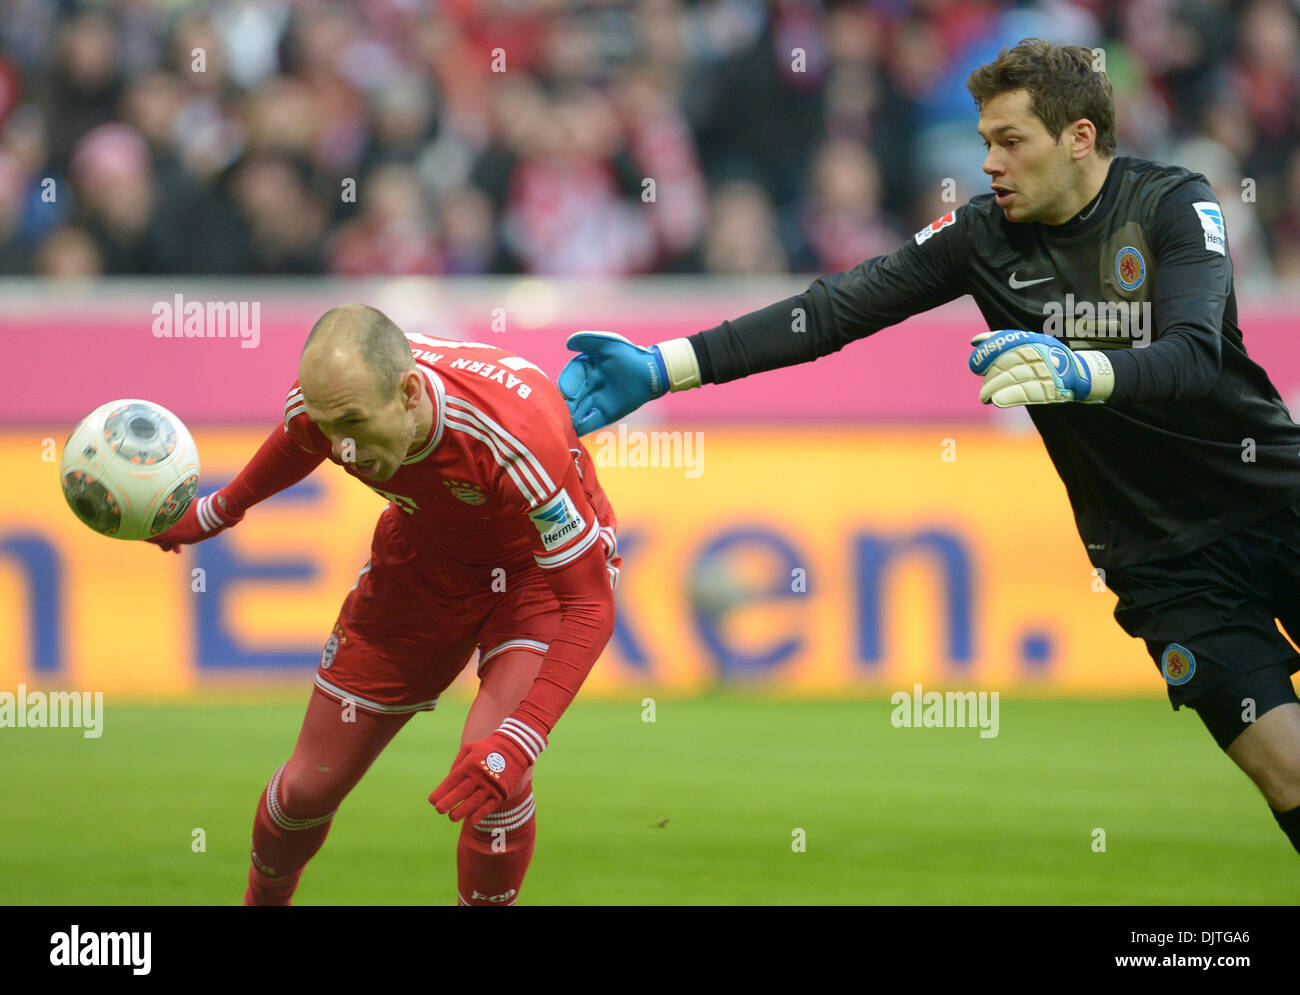 Munich, Germany. 30th Nov, 2013. Munich's Arjen Robben scores a 1-0 goal next to Braunschweig's Daniel Davari (R) during the German Bundesliga match between FC Bayern Munich and Eintracht Braunschweig at Allianz Arena in Munich, Germany, 30 November 2013. Photo: ANDREAS GEBERT (ATTENTION: Due to the accreditation guidelines, the DFL only permits the publication and utilisation of up to 15 pictures per match on the internet and in online media during the match.)/dpa/Alamy Live News - Stock Image